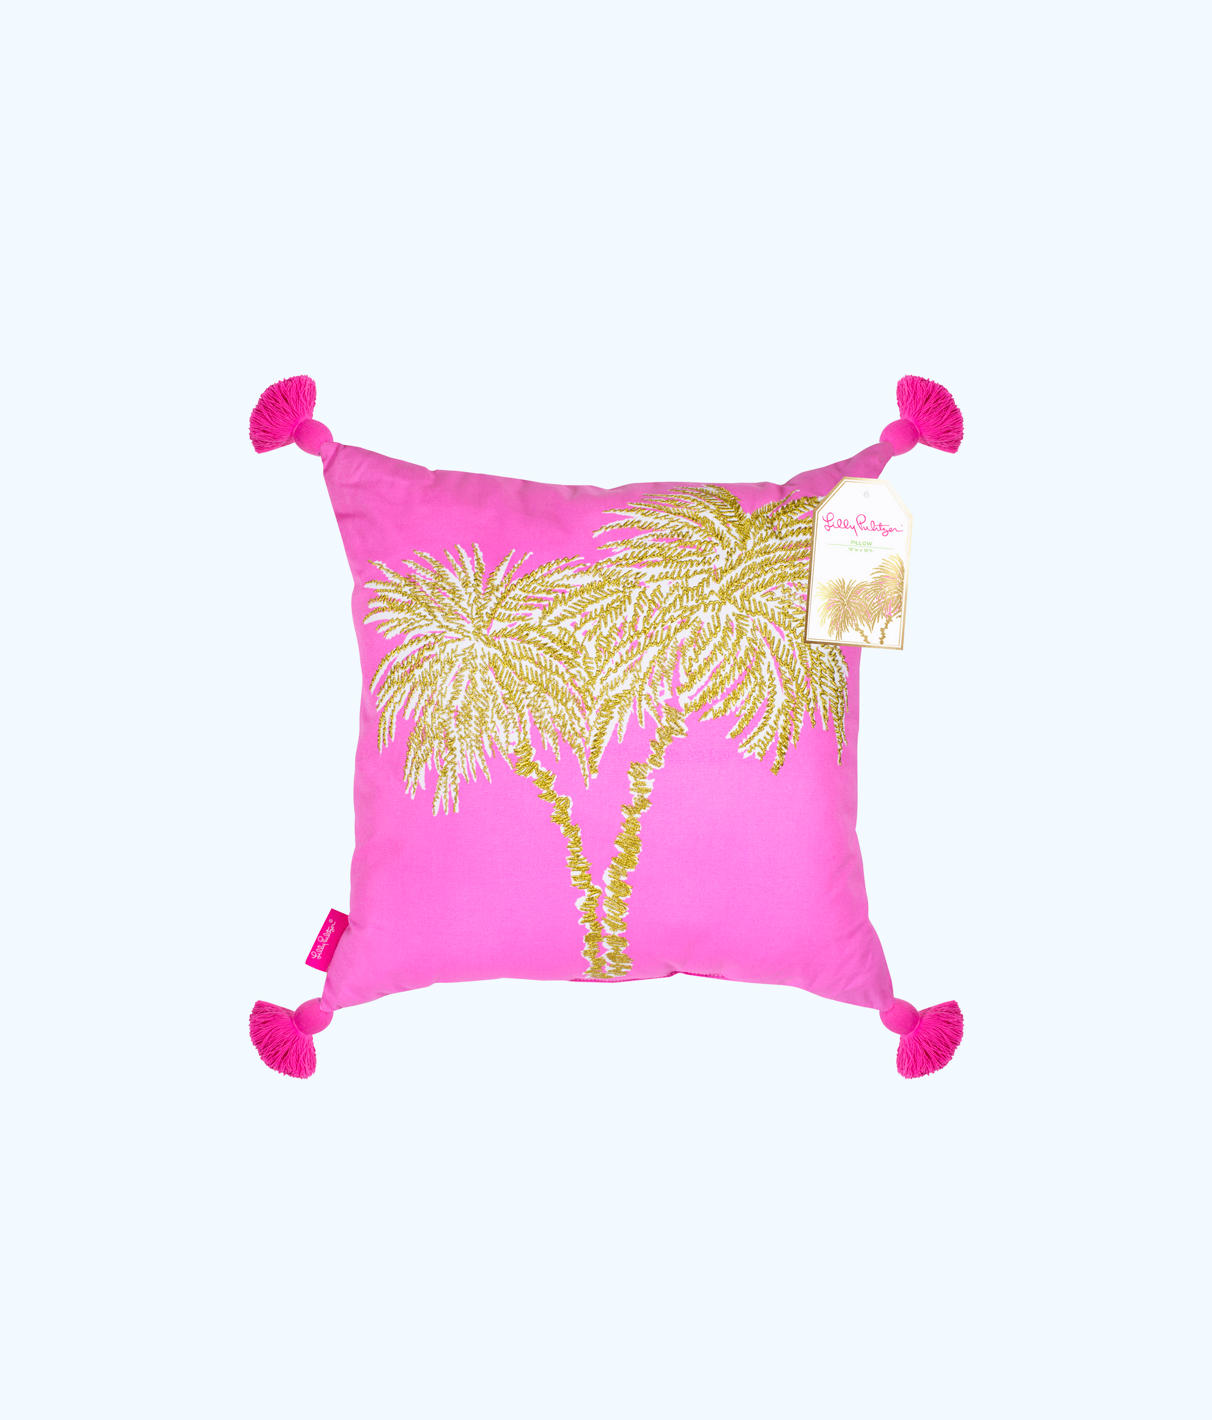 Lilly Pulitzer Lilly Pulitzer Large Indoor Pillow